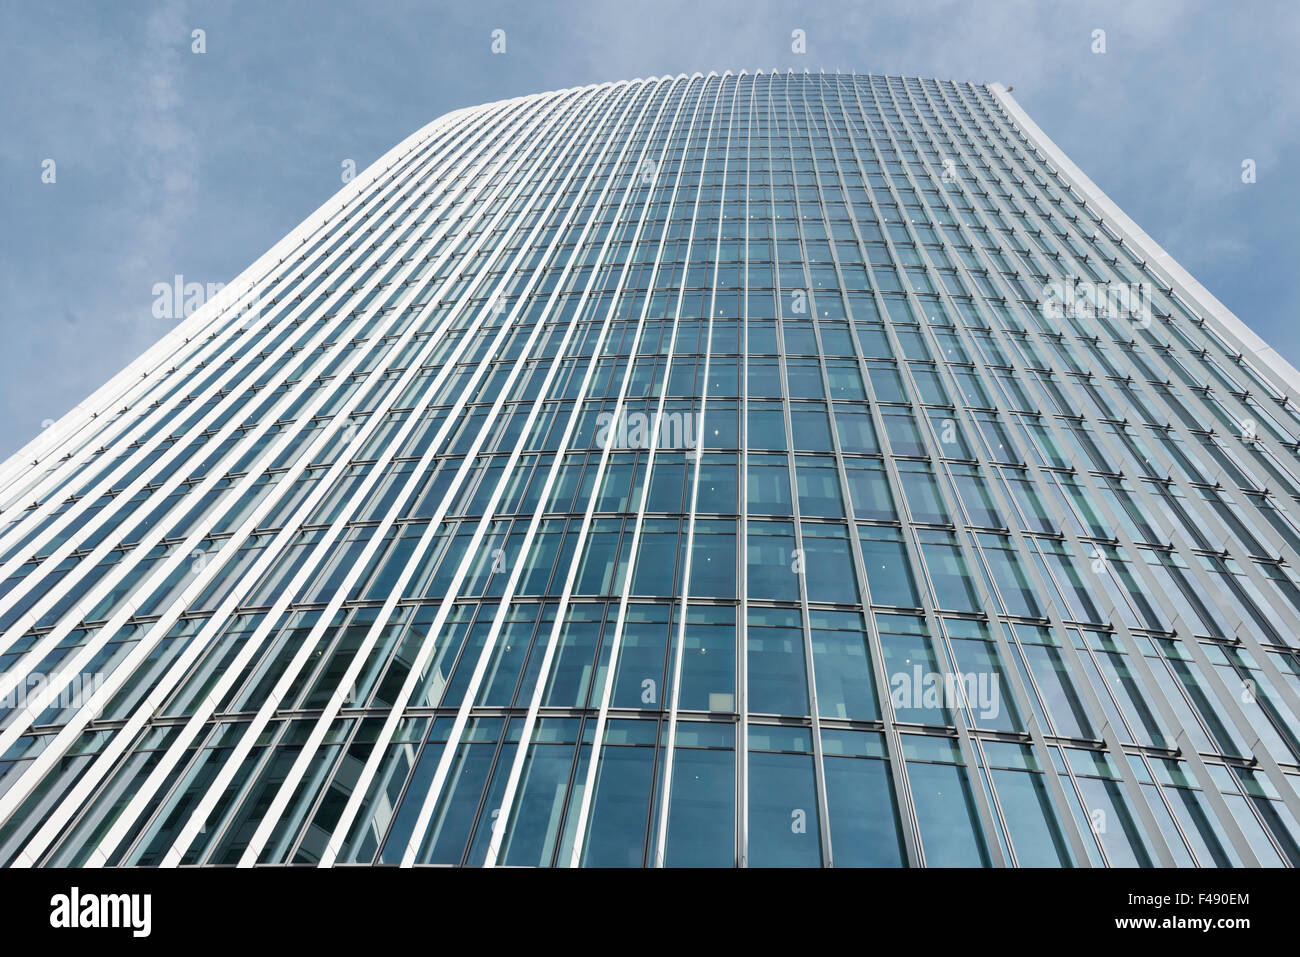 20 Fenchurch Street (walkie-talkie) building, Fenchurch Street, City of London, London, England, United Kingdom - Stock Image